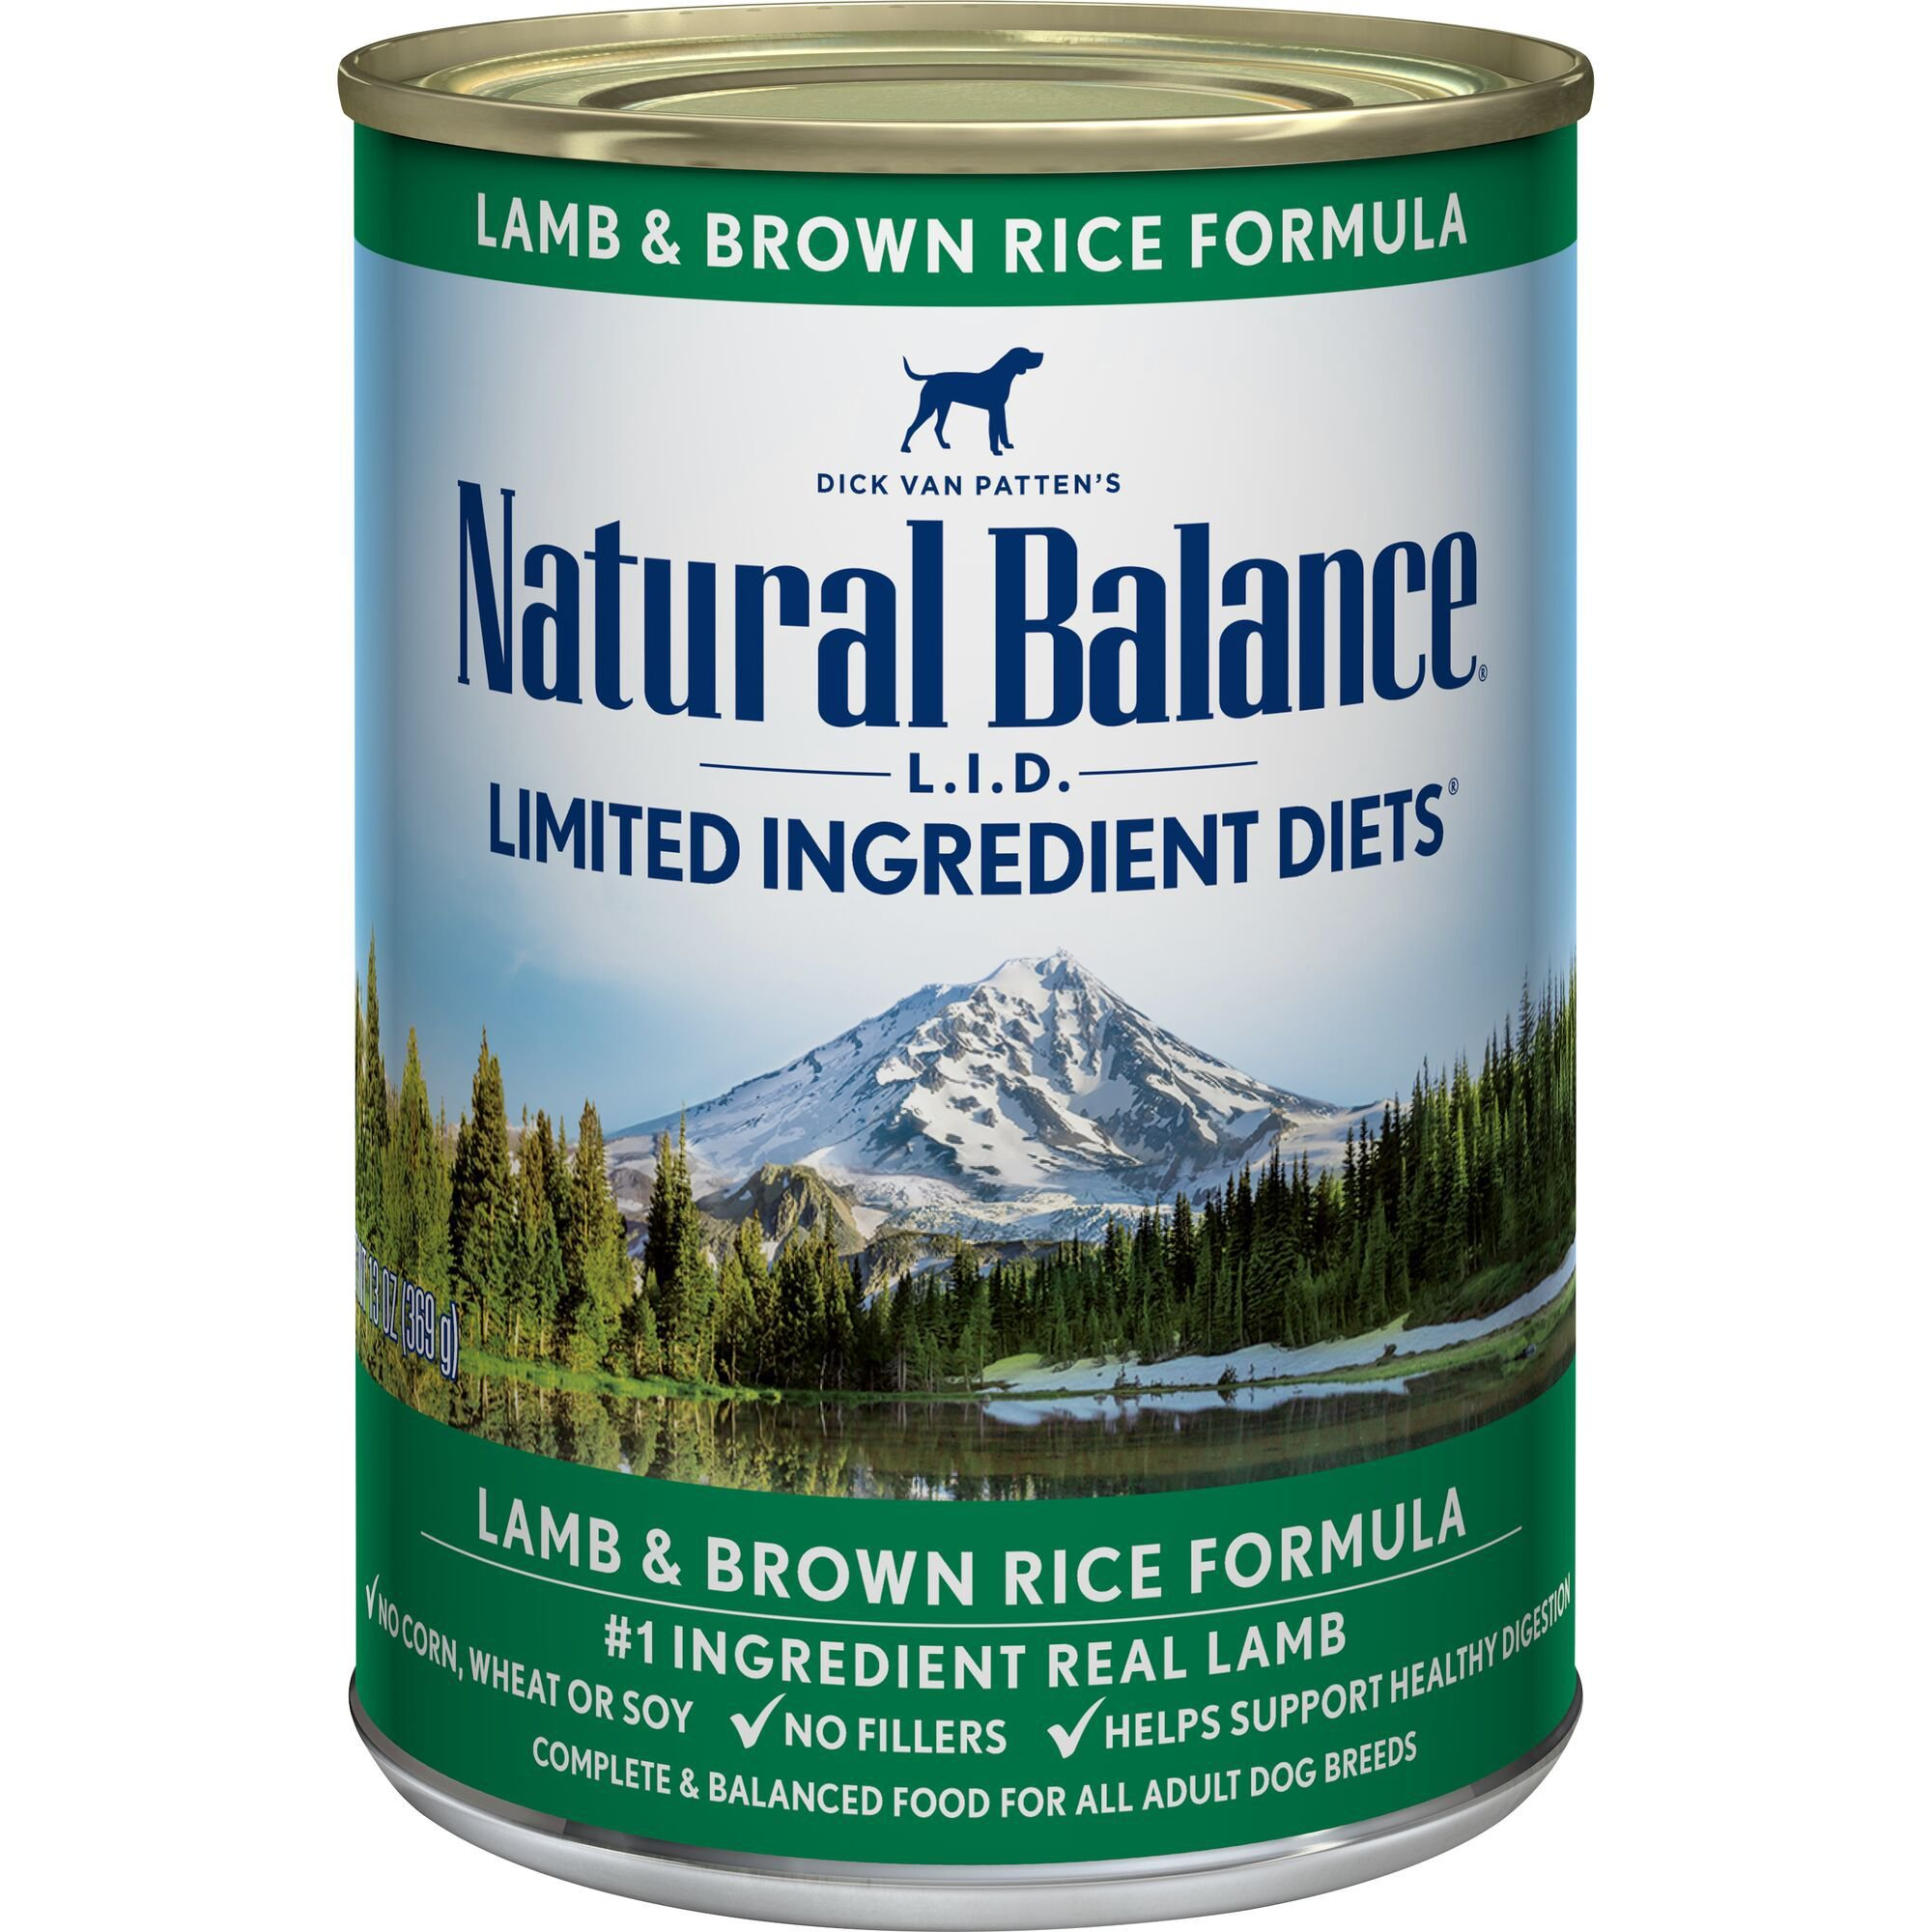 Natural Balance Limited Ingredient Canned Cat Food